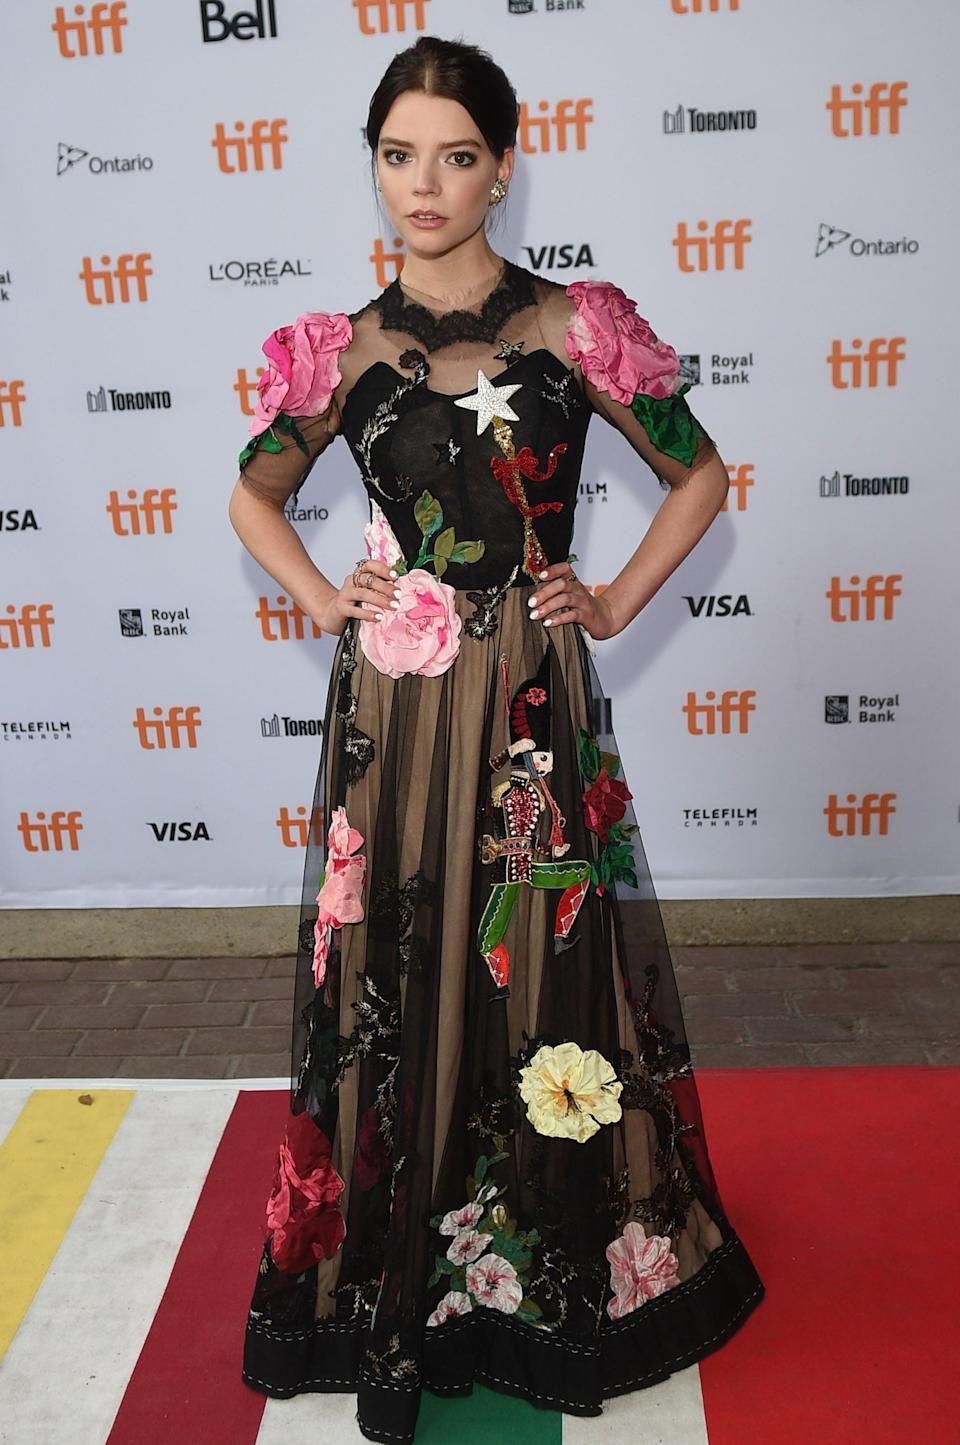 <p>Anya wore a floral Dolce &amp; Gabbana gown with that must-have accessory - a wand!</p>